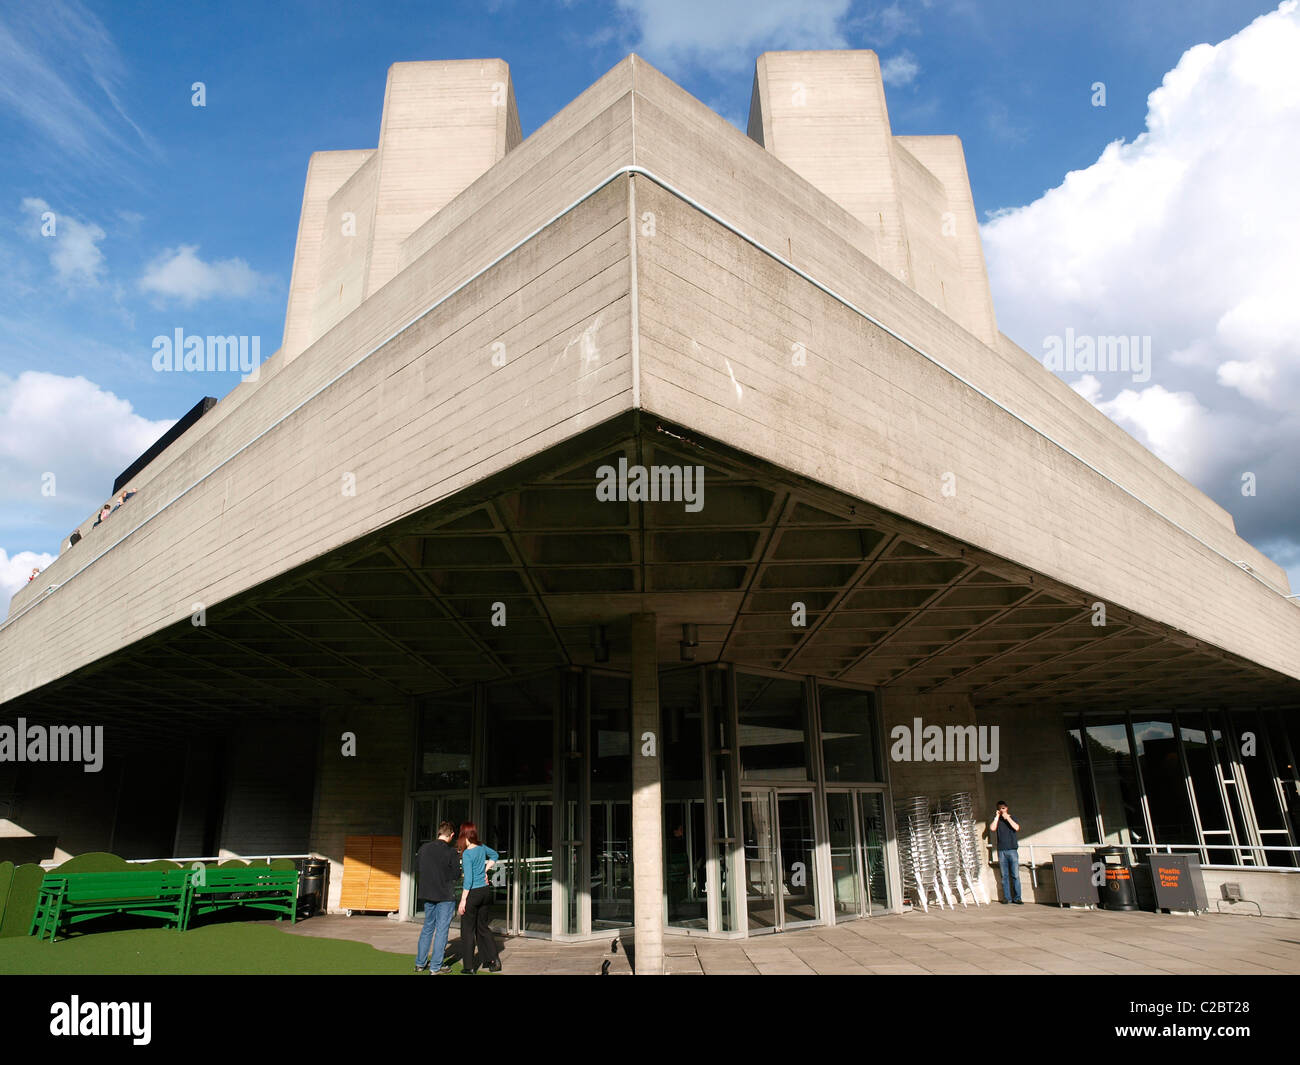 The Royal National Theater or as it is more generally known The National Theater the South Bank London - Stock Image